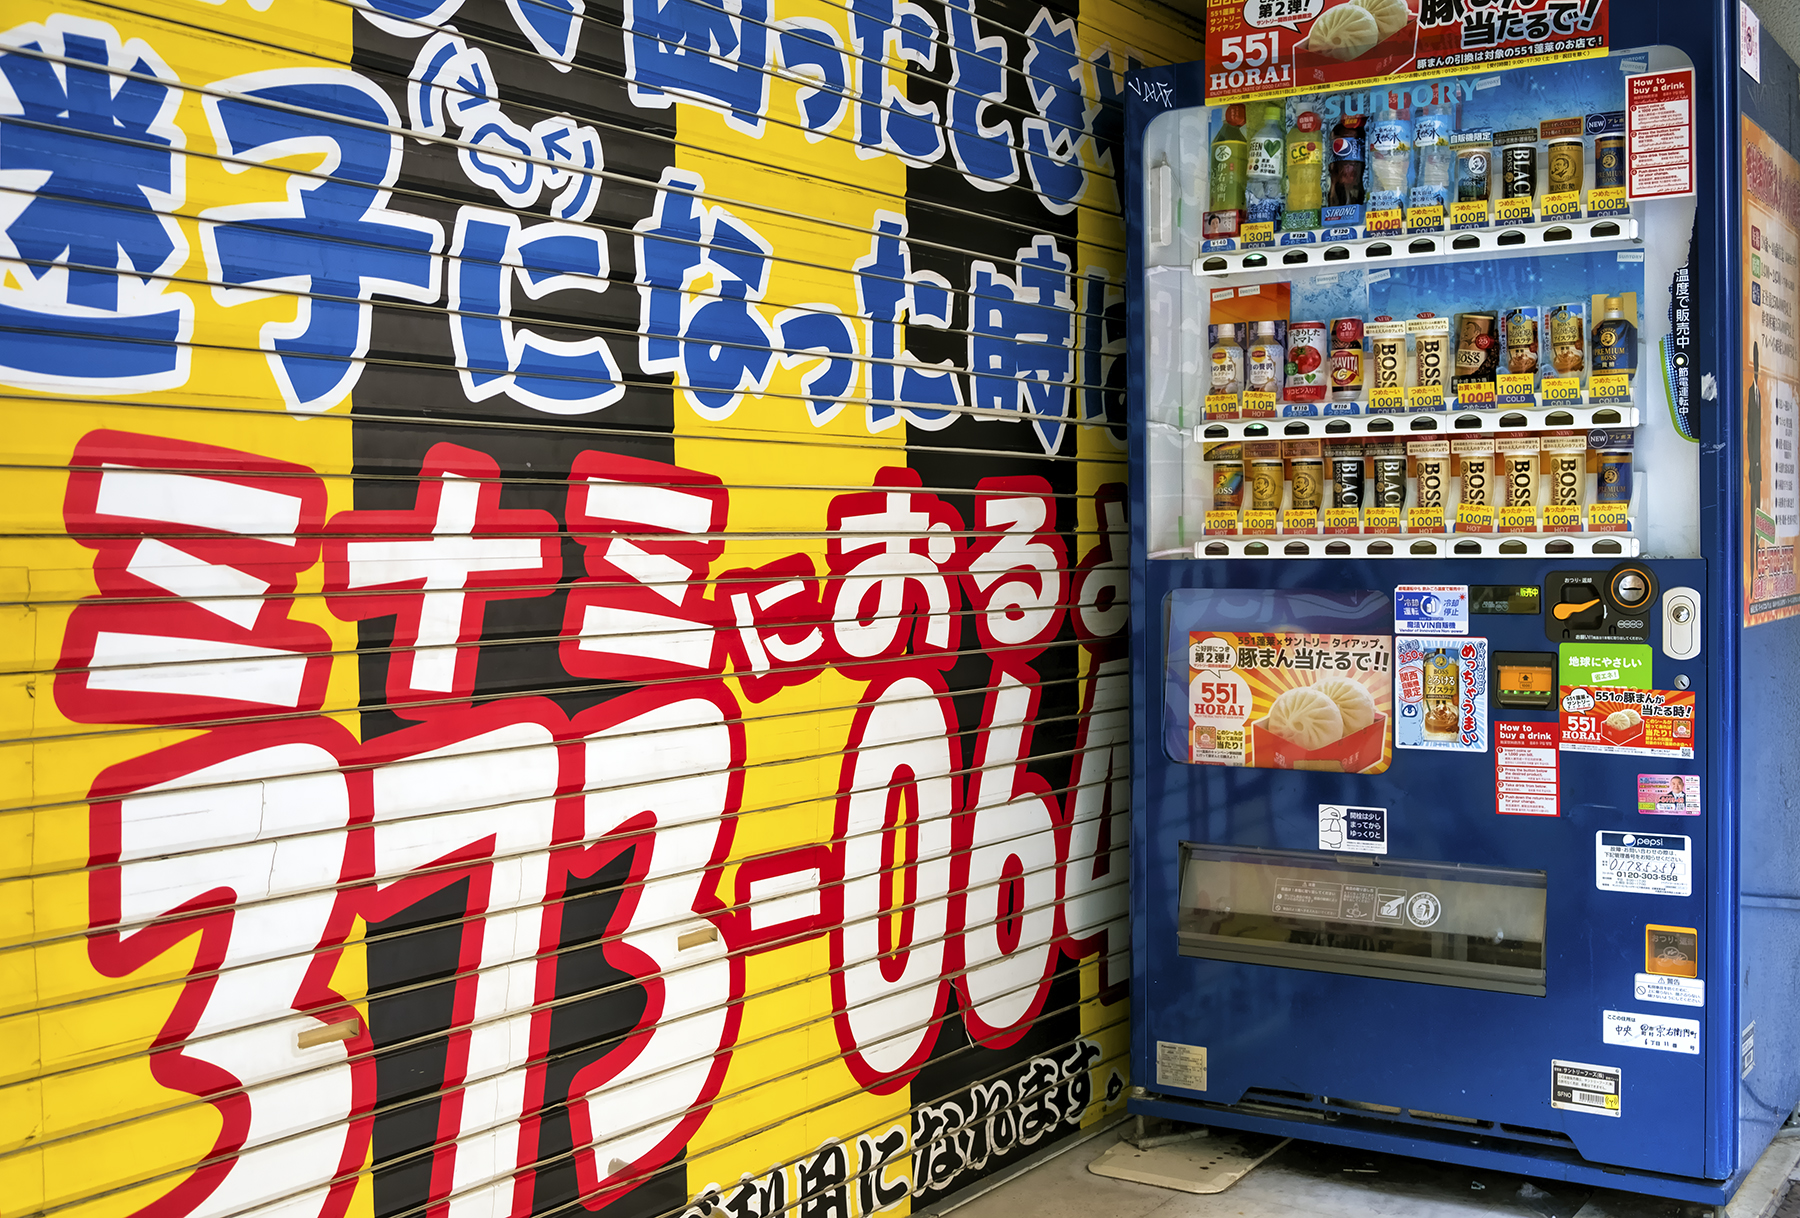 Doug_Caplan_Japanese-Vending-Machines_Untitled_04.jpg